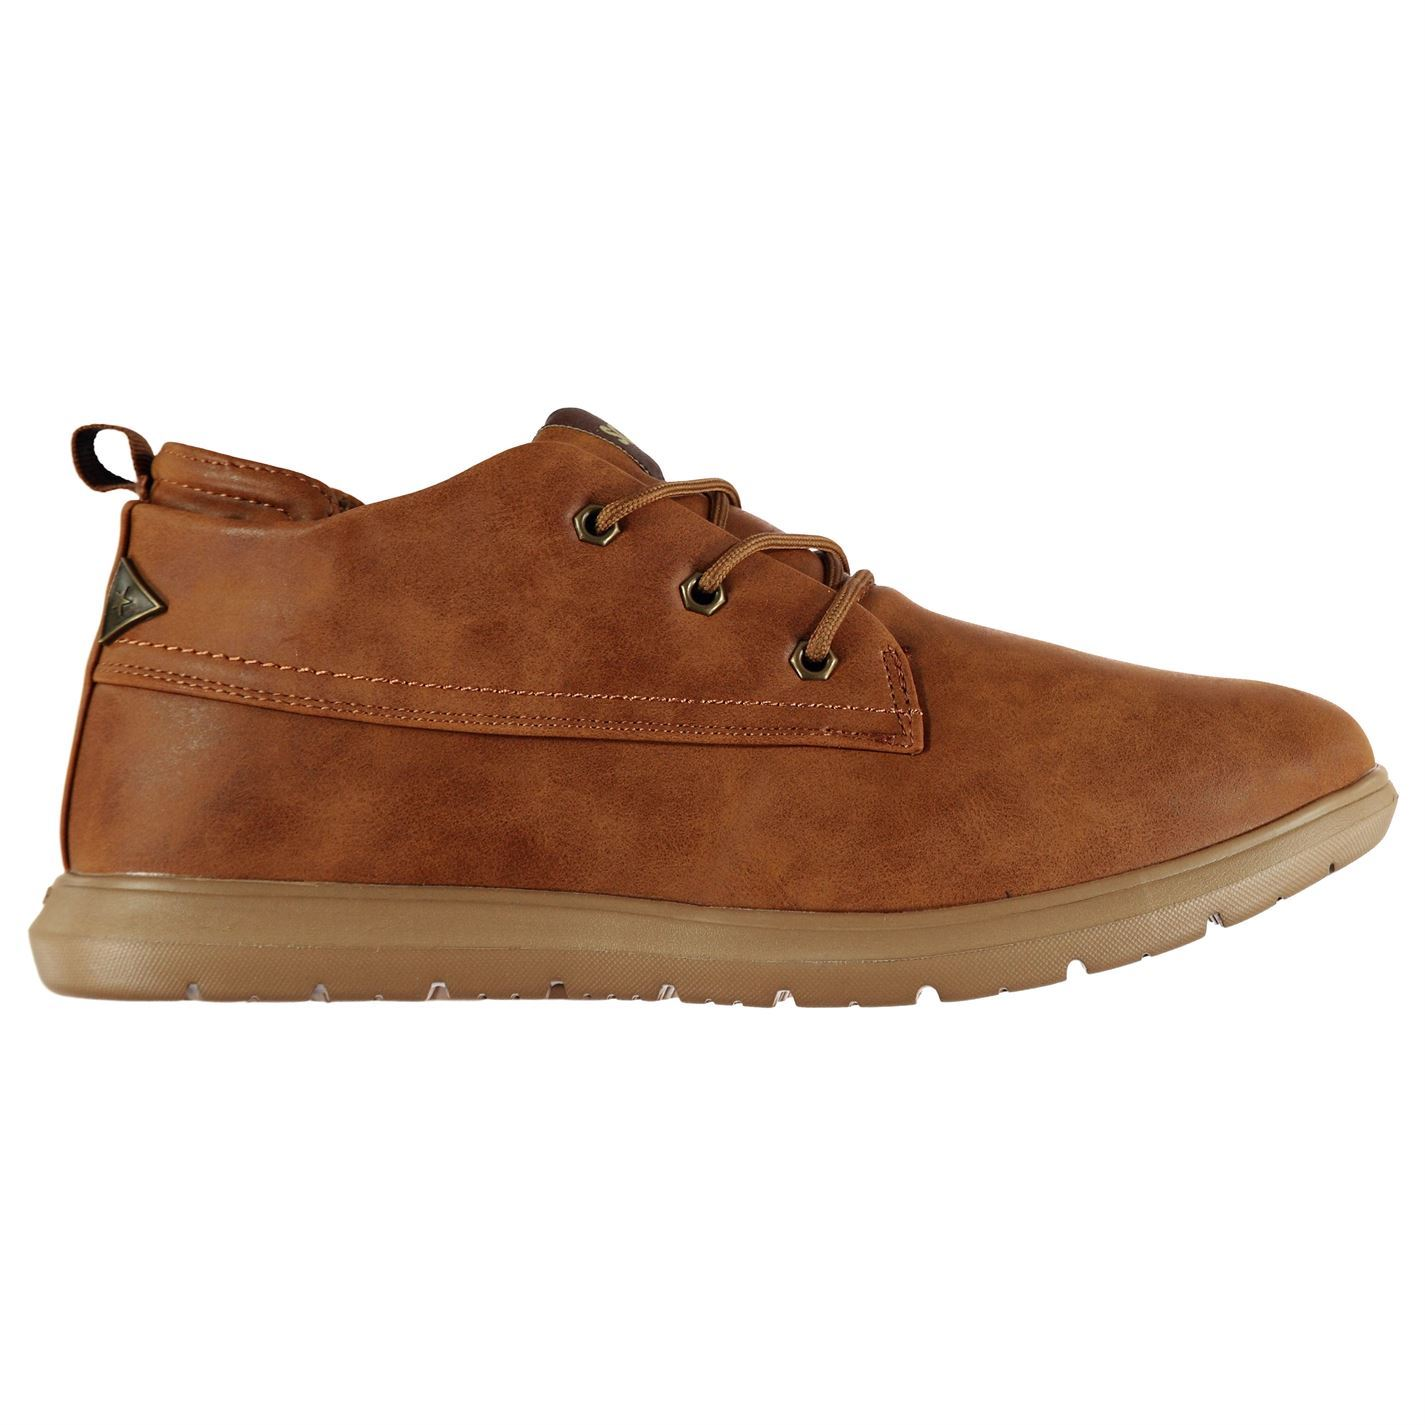 f401b0ba89 Soviet Mens Compton Chukka Boots Lace Up Padded Ankle Collar Textured